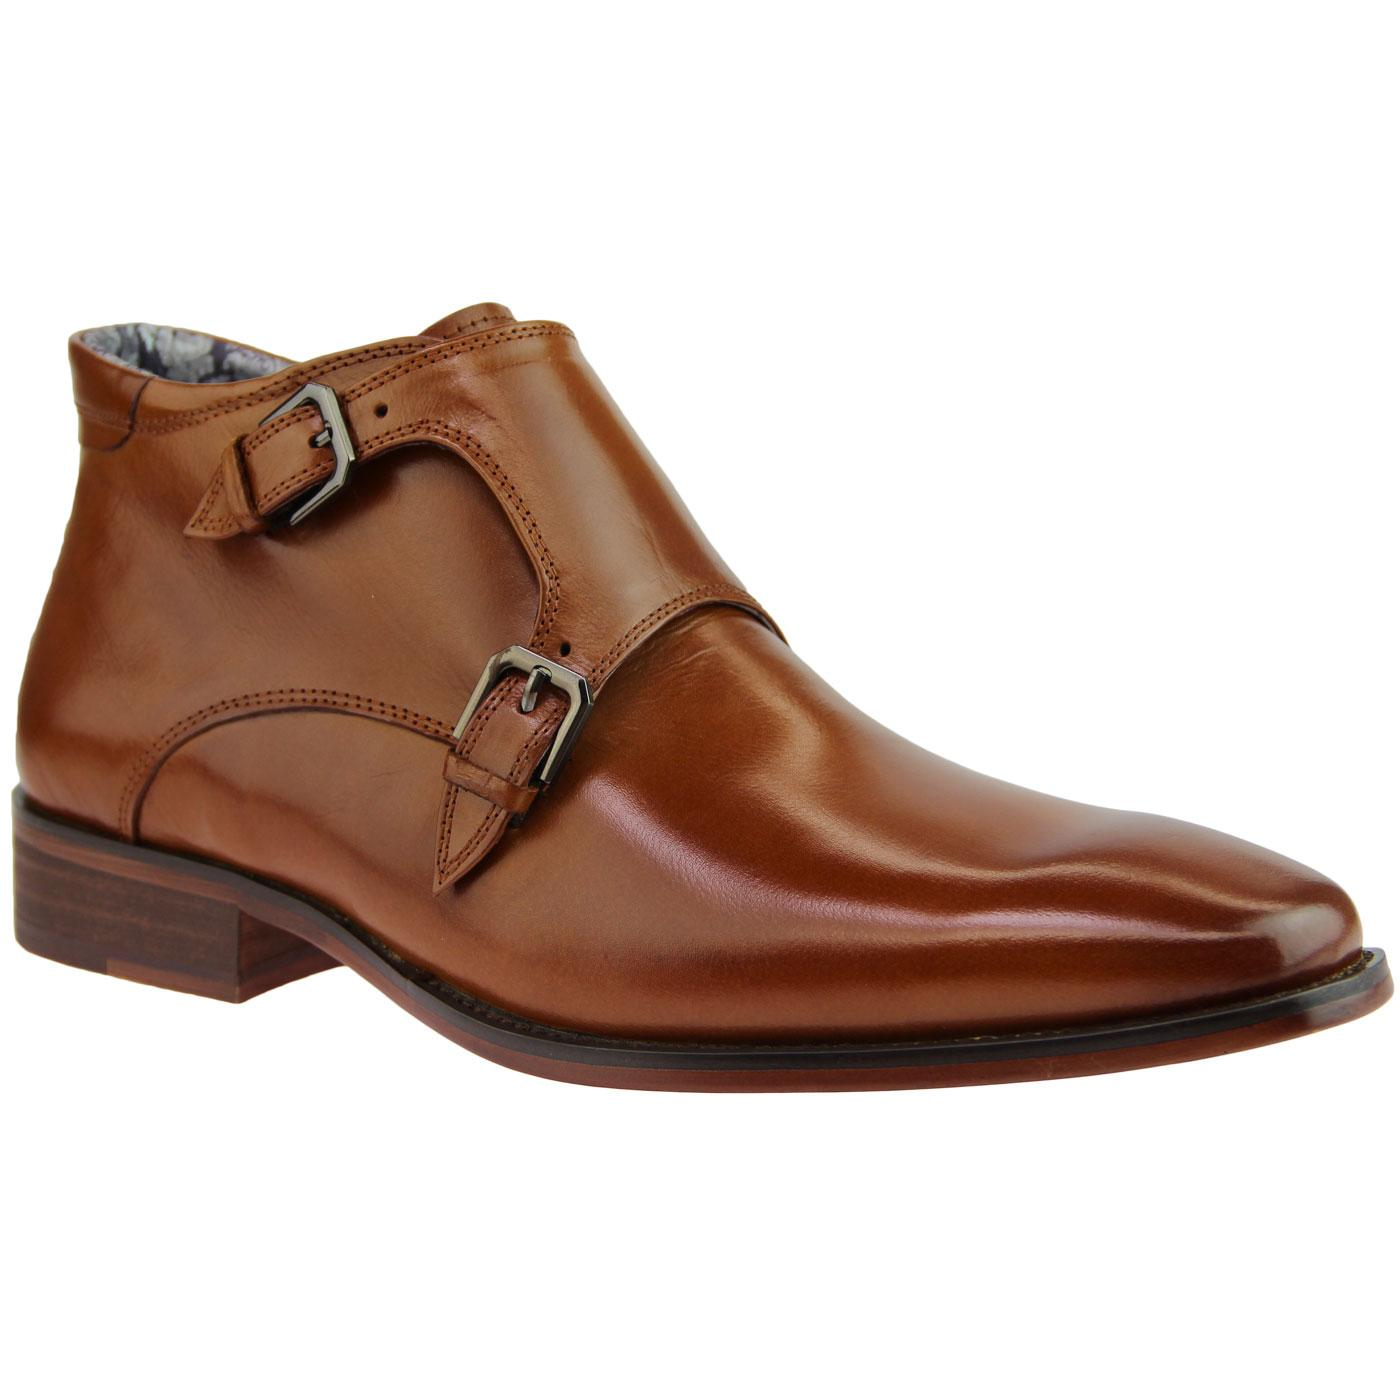 Swinford PAOLO VANDINI Monk Strap Ankle Boots TAN